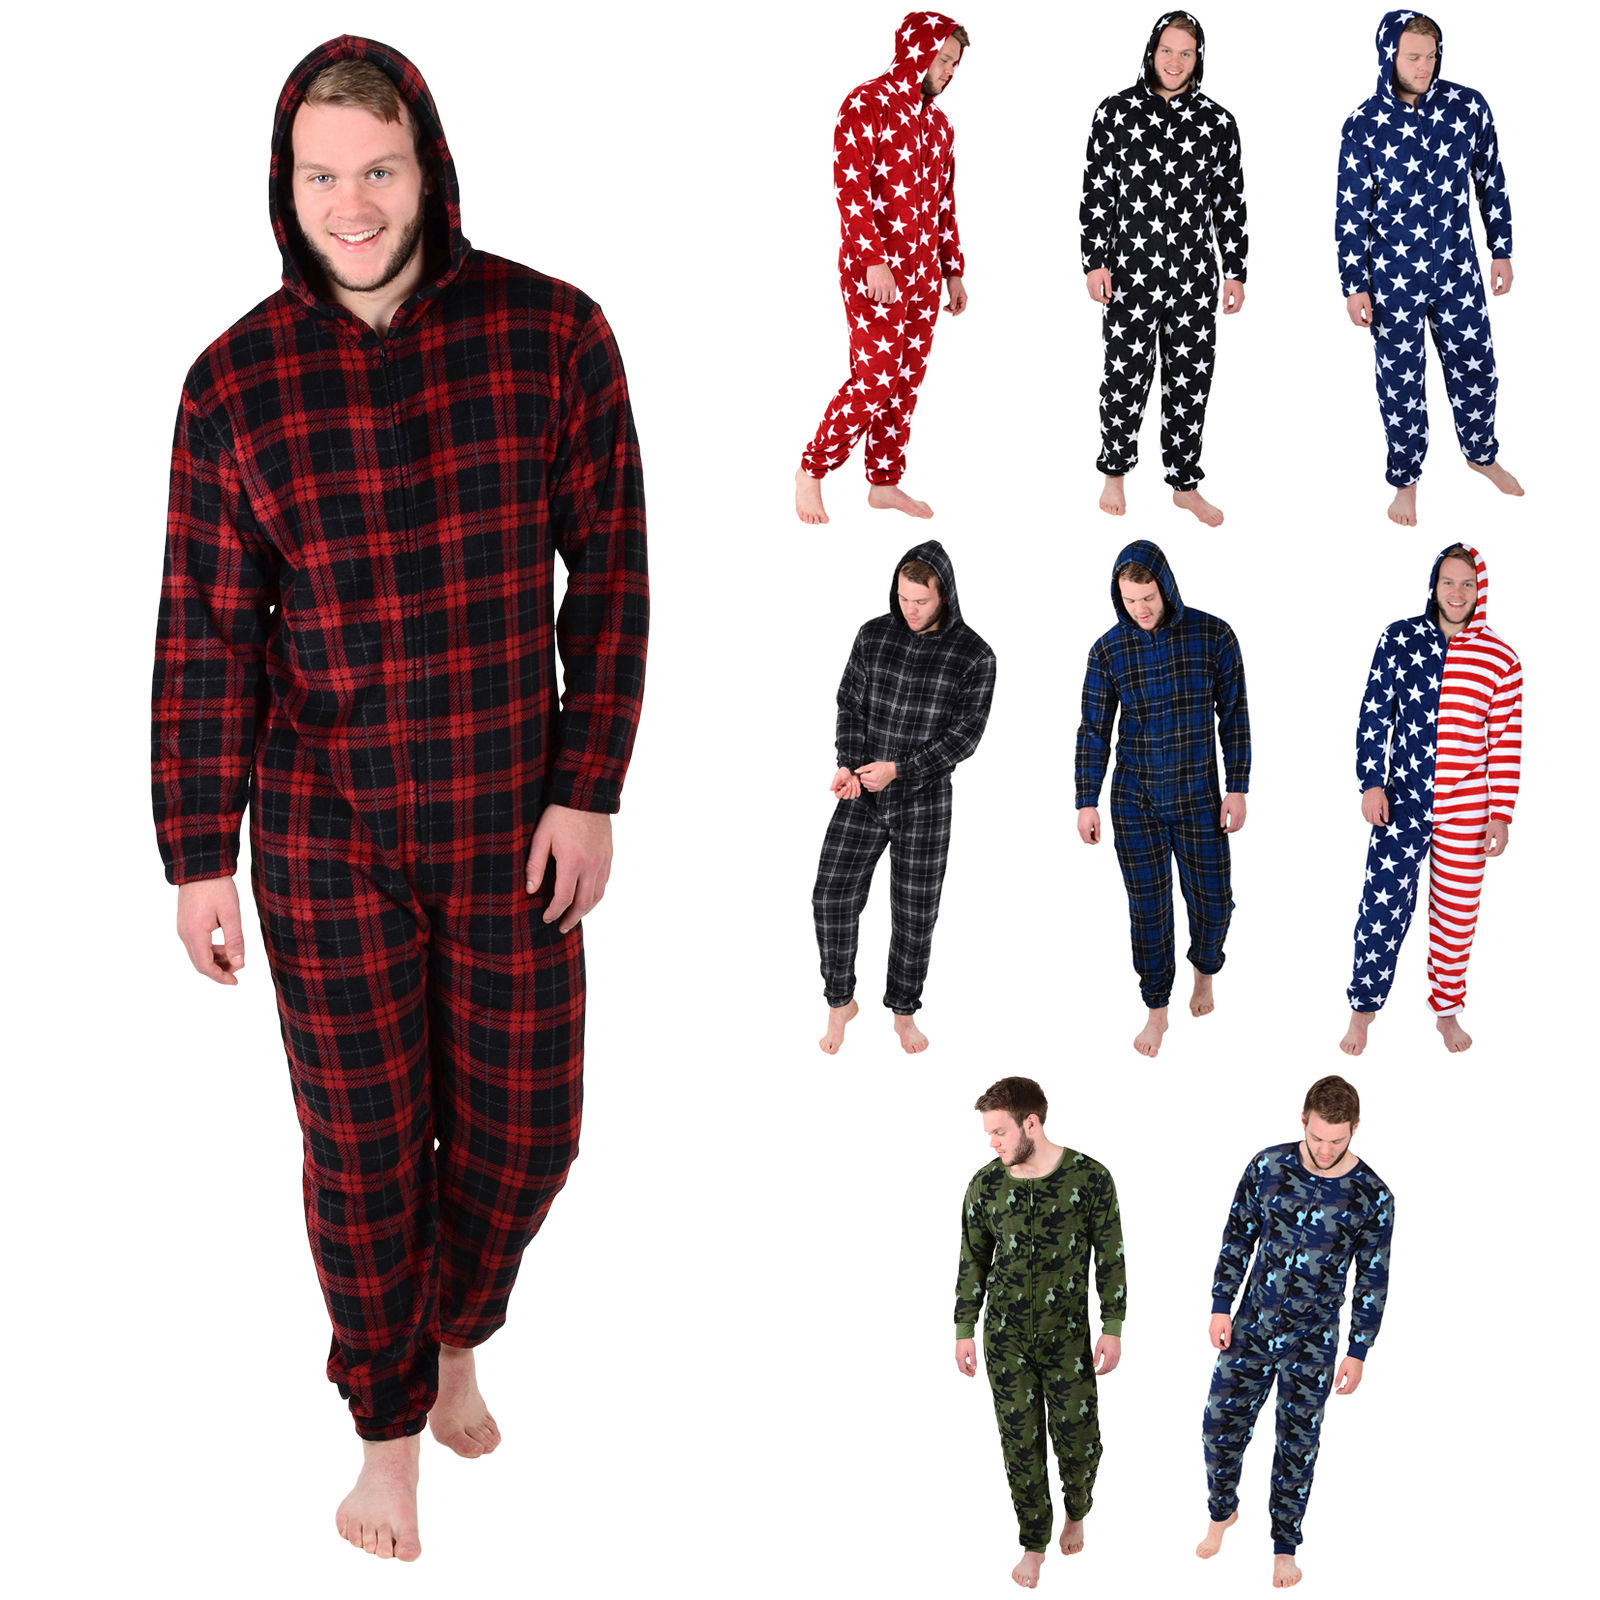 Your kid-envy is over with a pair of our comfy one-piece footed pajamas, now available in sizes to fit infants to adults! When the seasons leave a brisk chill in the morning air, these warm pajamas are the perfect complement to a luscious cup of coffee or creamy hot chocolate.